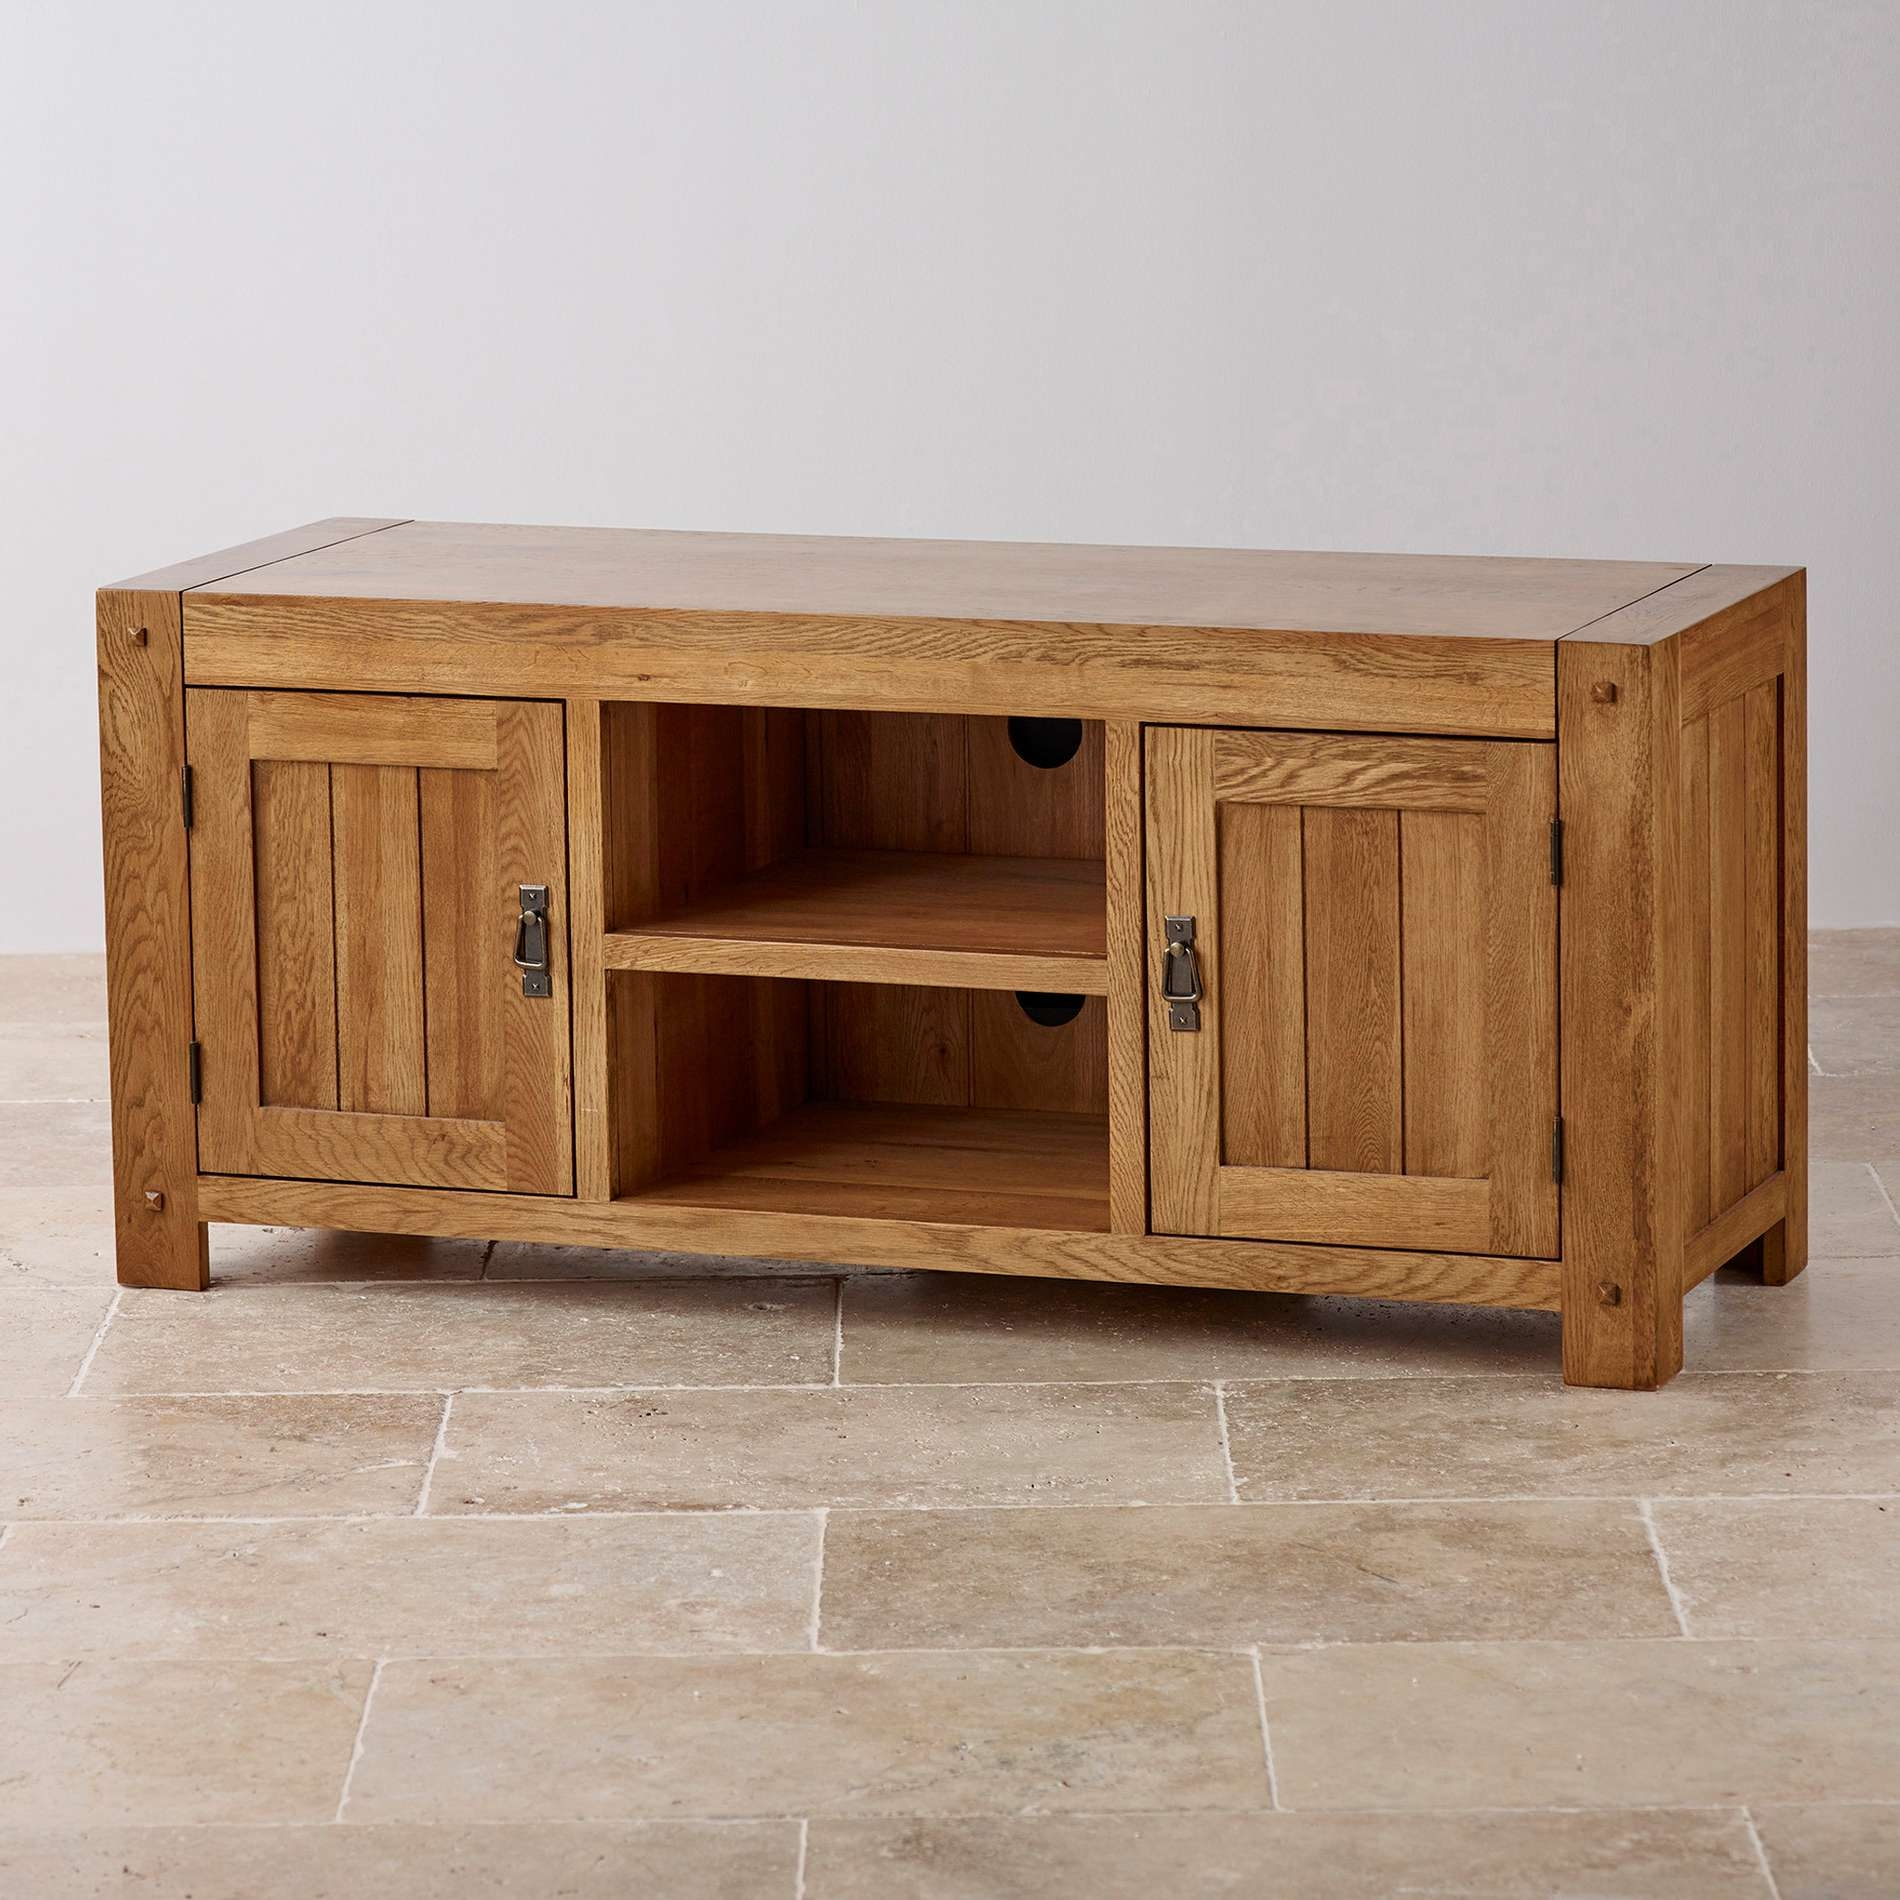 Tv Cabinets | Mango, Painted & Oak Tv Units | Oak Furniture Land With Regard To Large Oak Tv Cabinets (View 17 of 20)